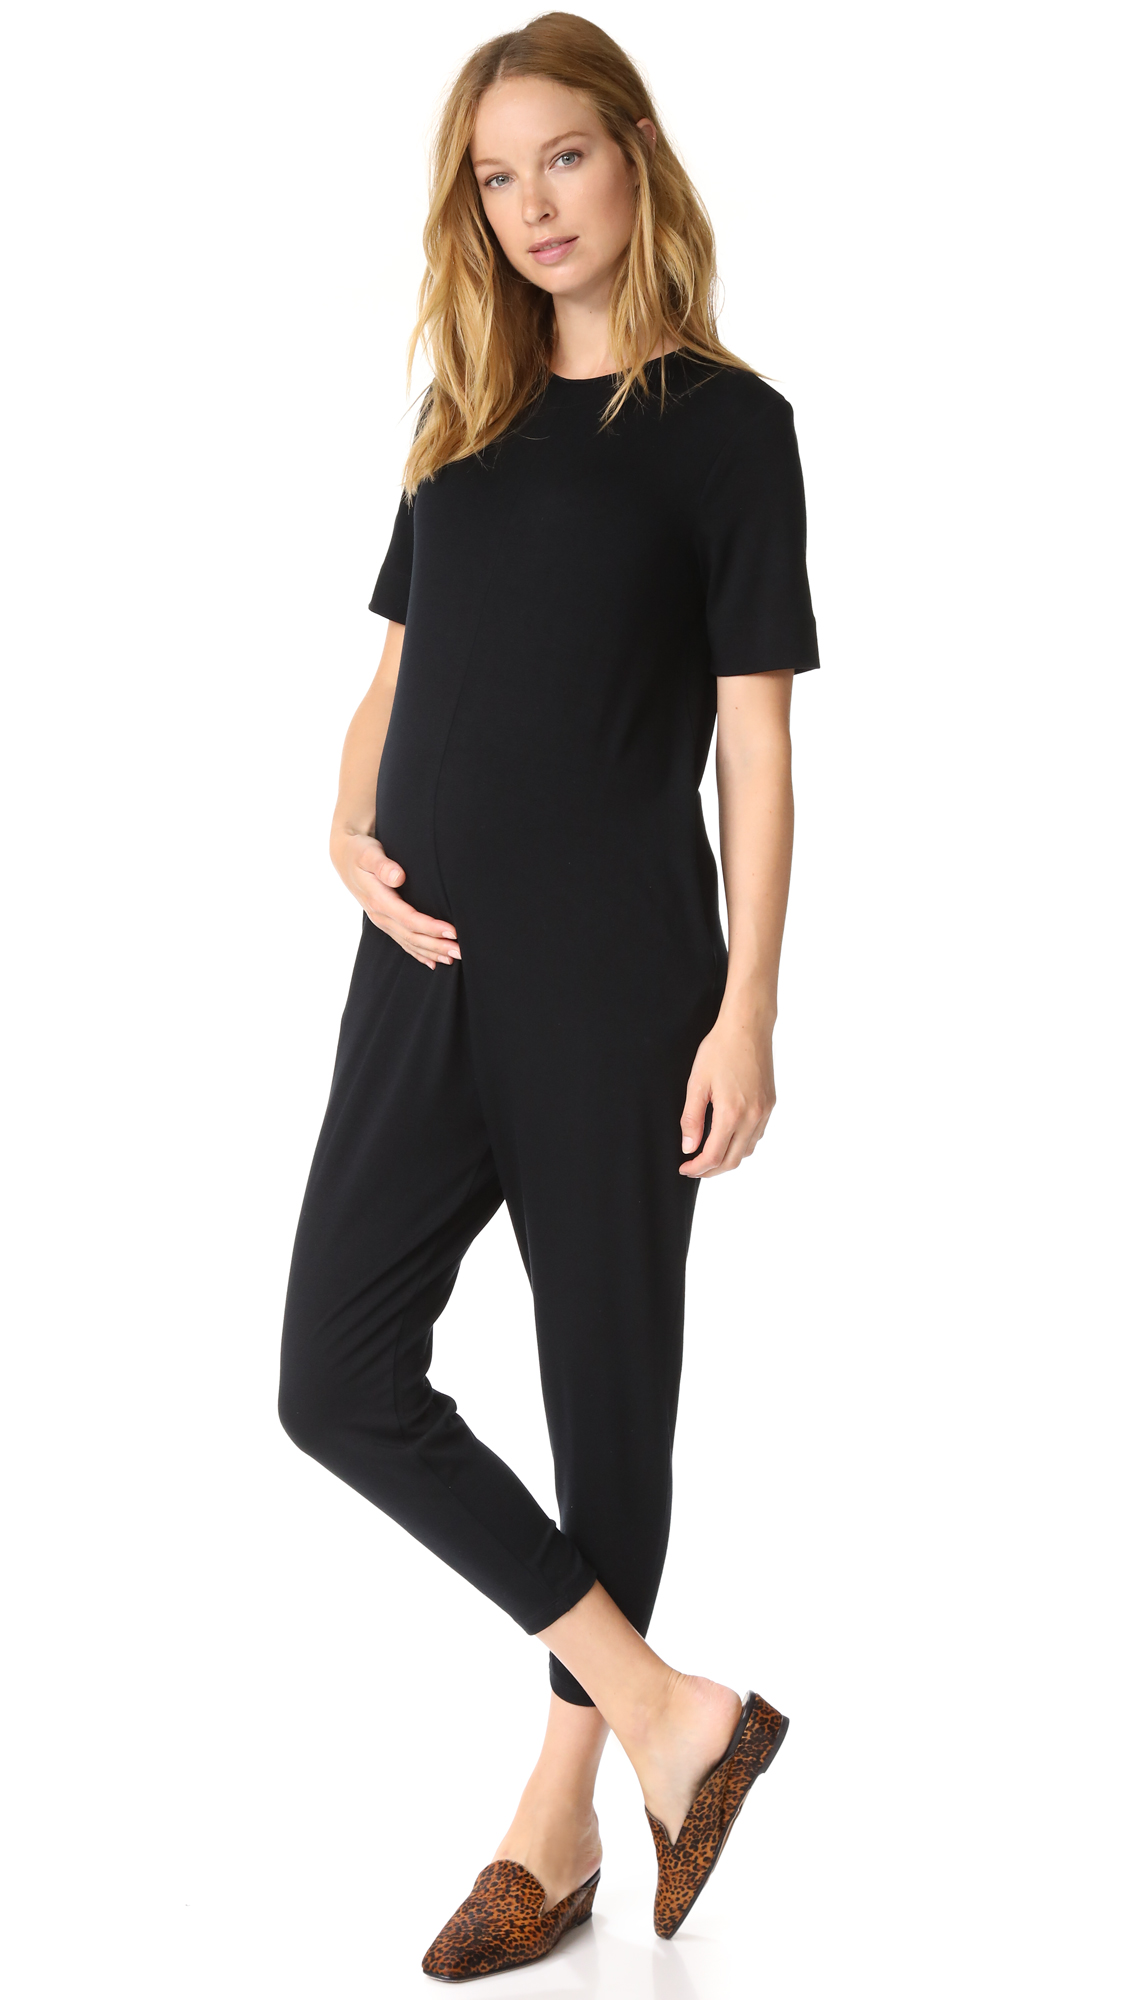 HATCH The Walkabout Jumpsuit In Black